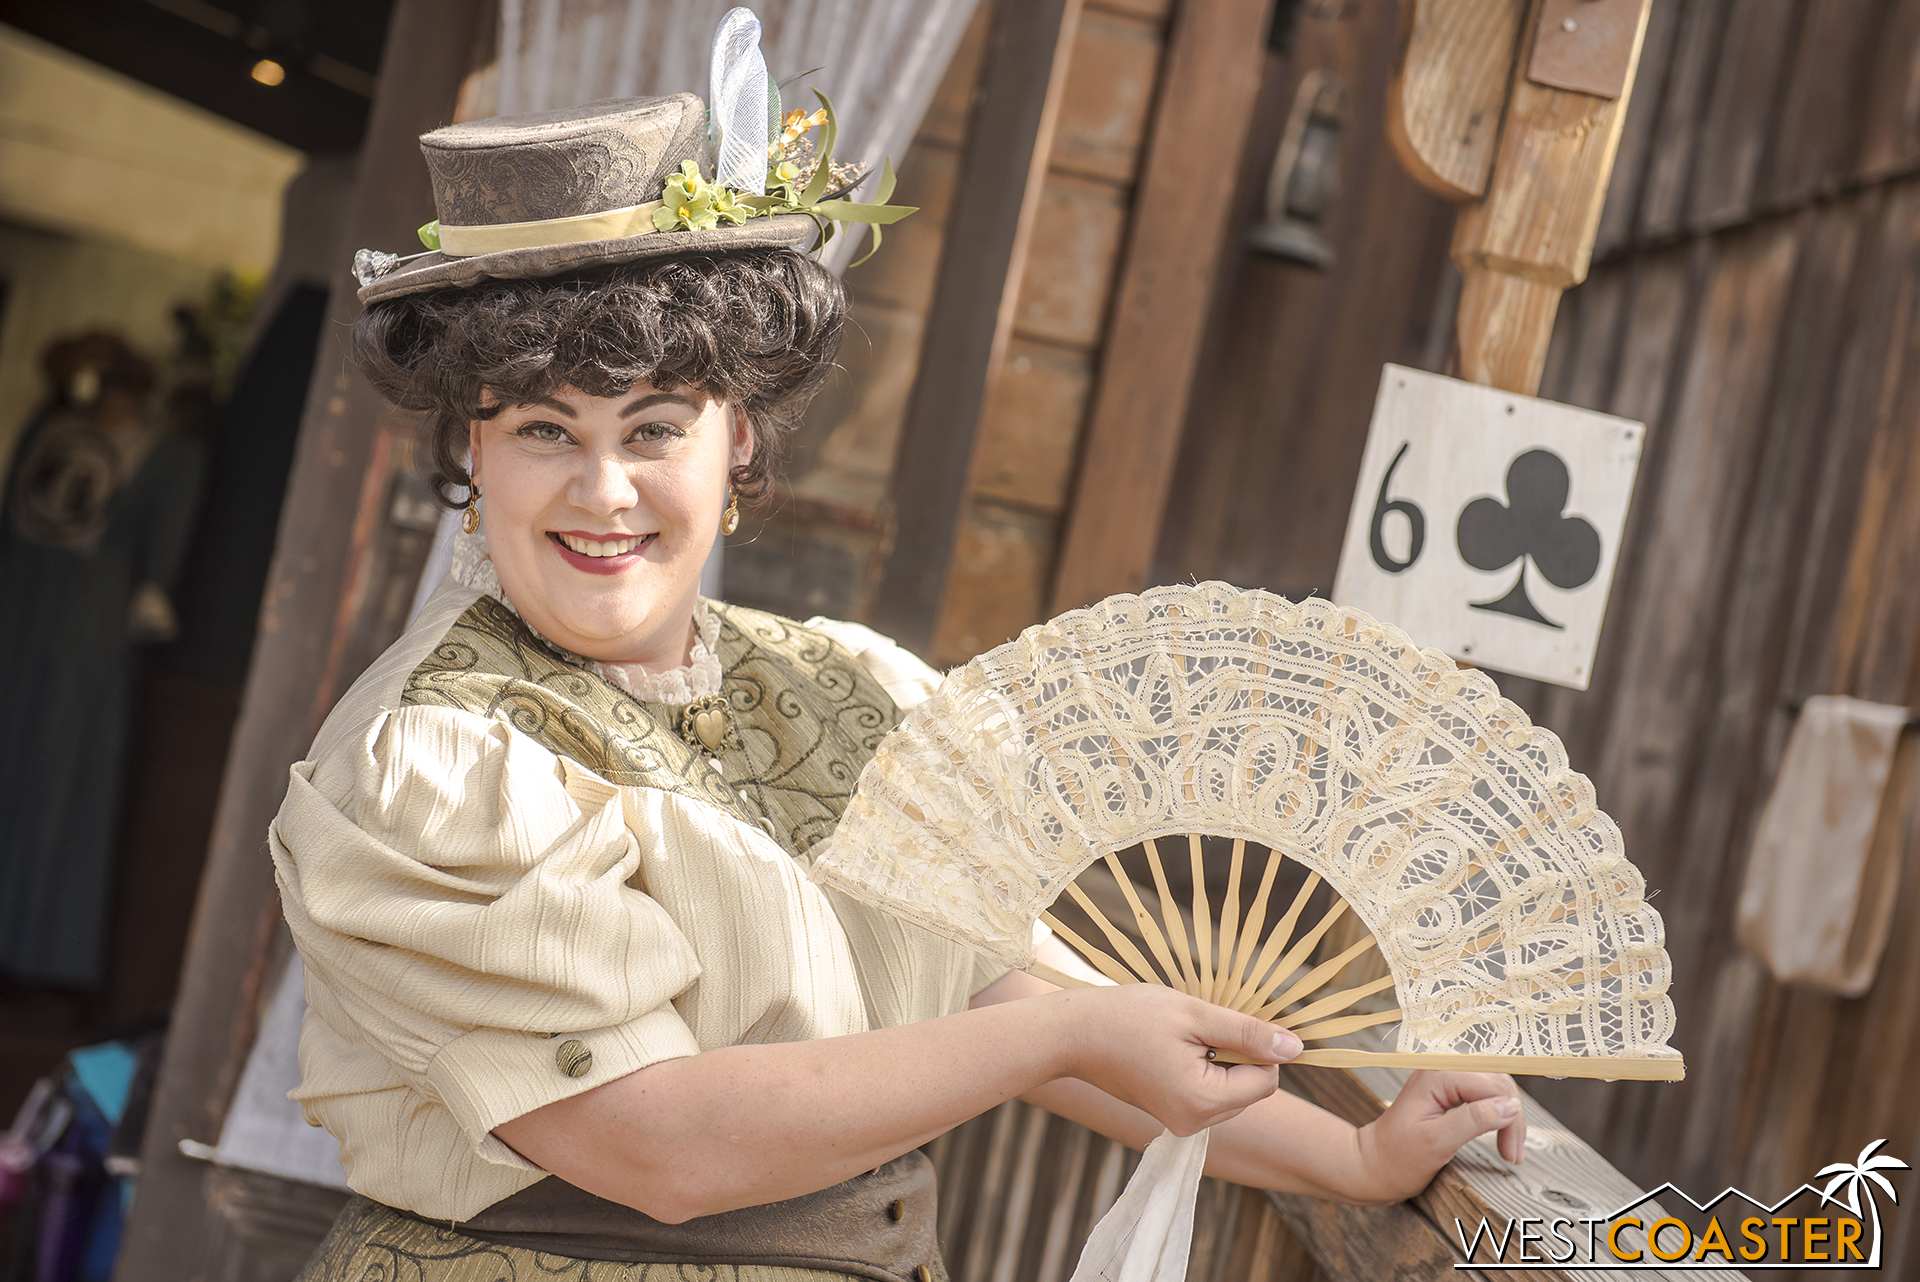 Miss Donna Ferndale has taken up a role running Gertie's Dress Shop while Gertie is away on business.